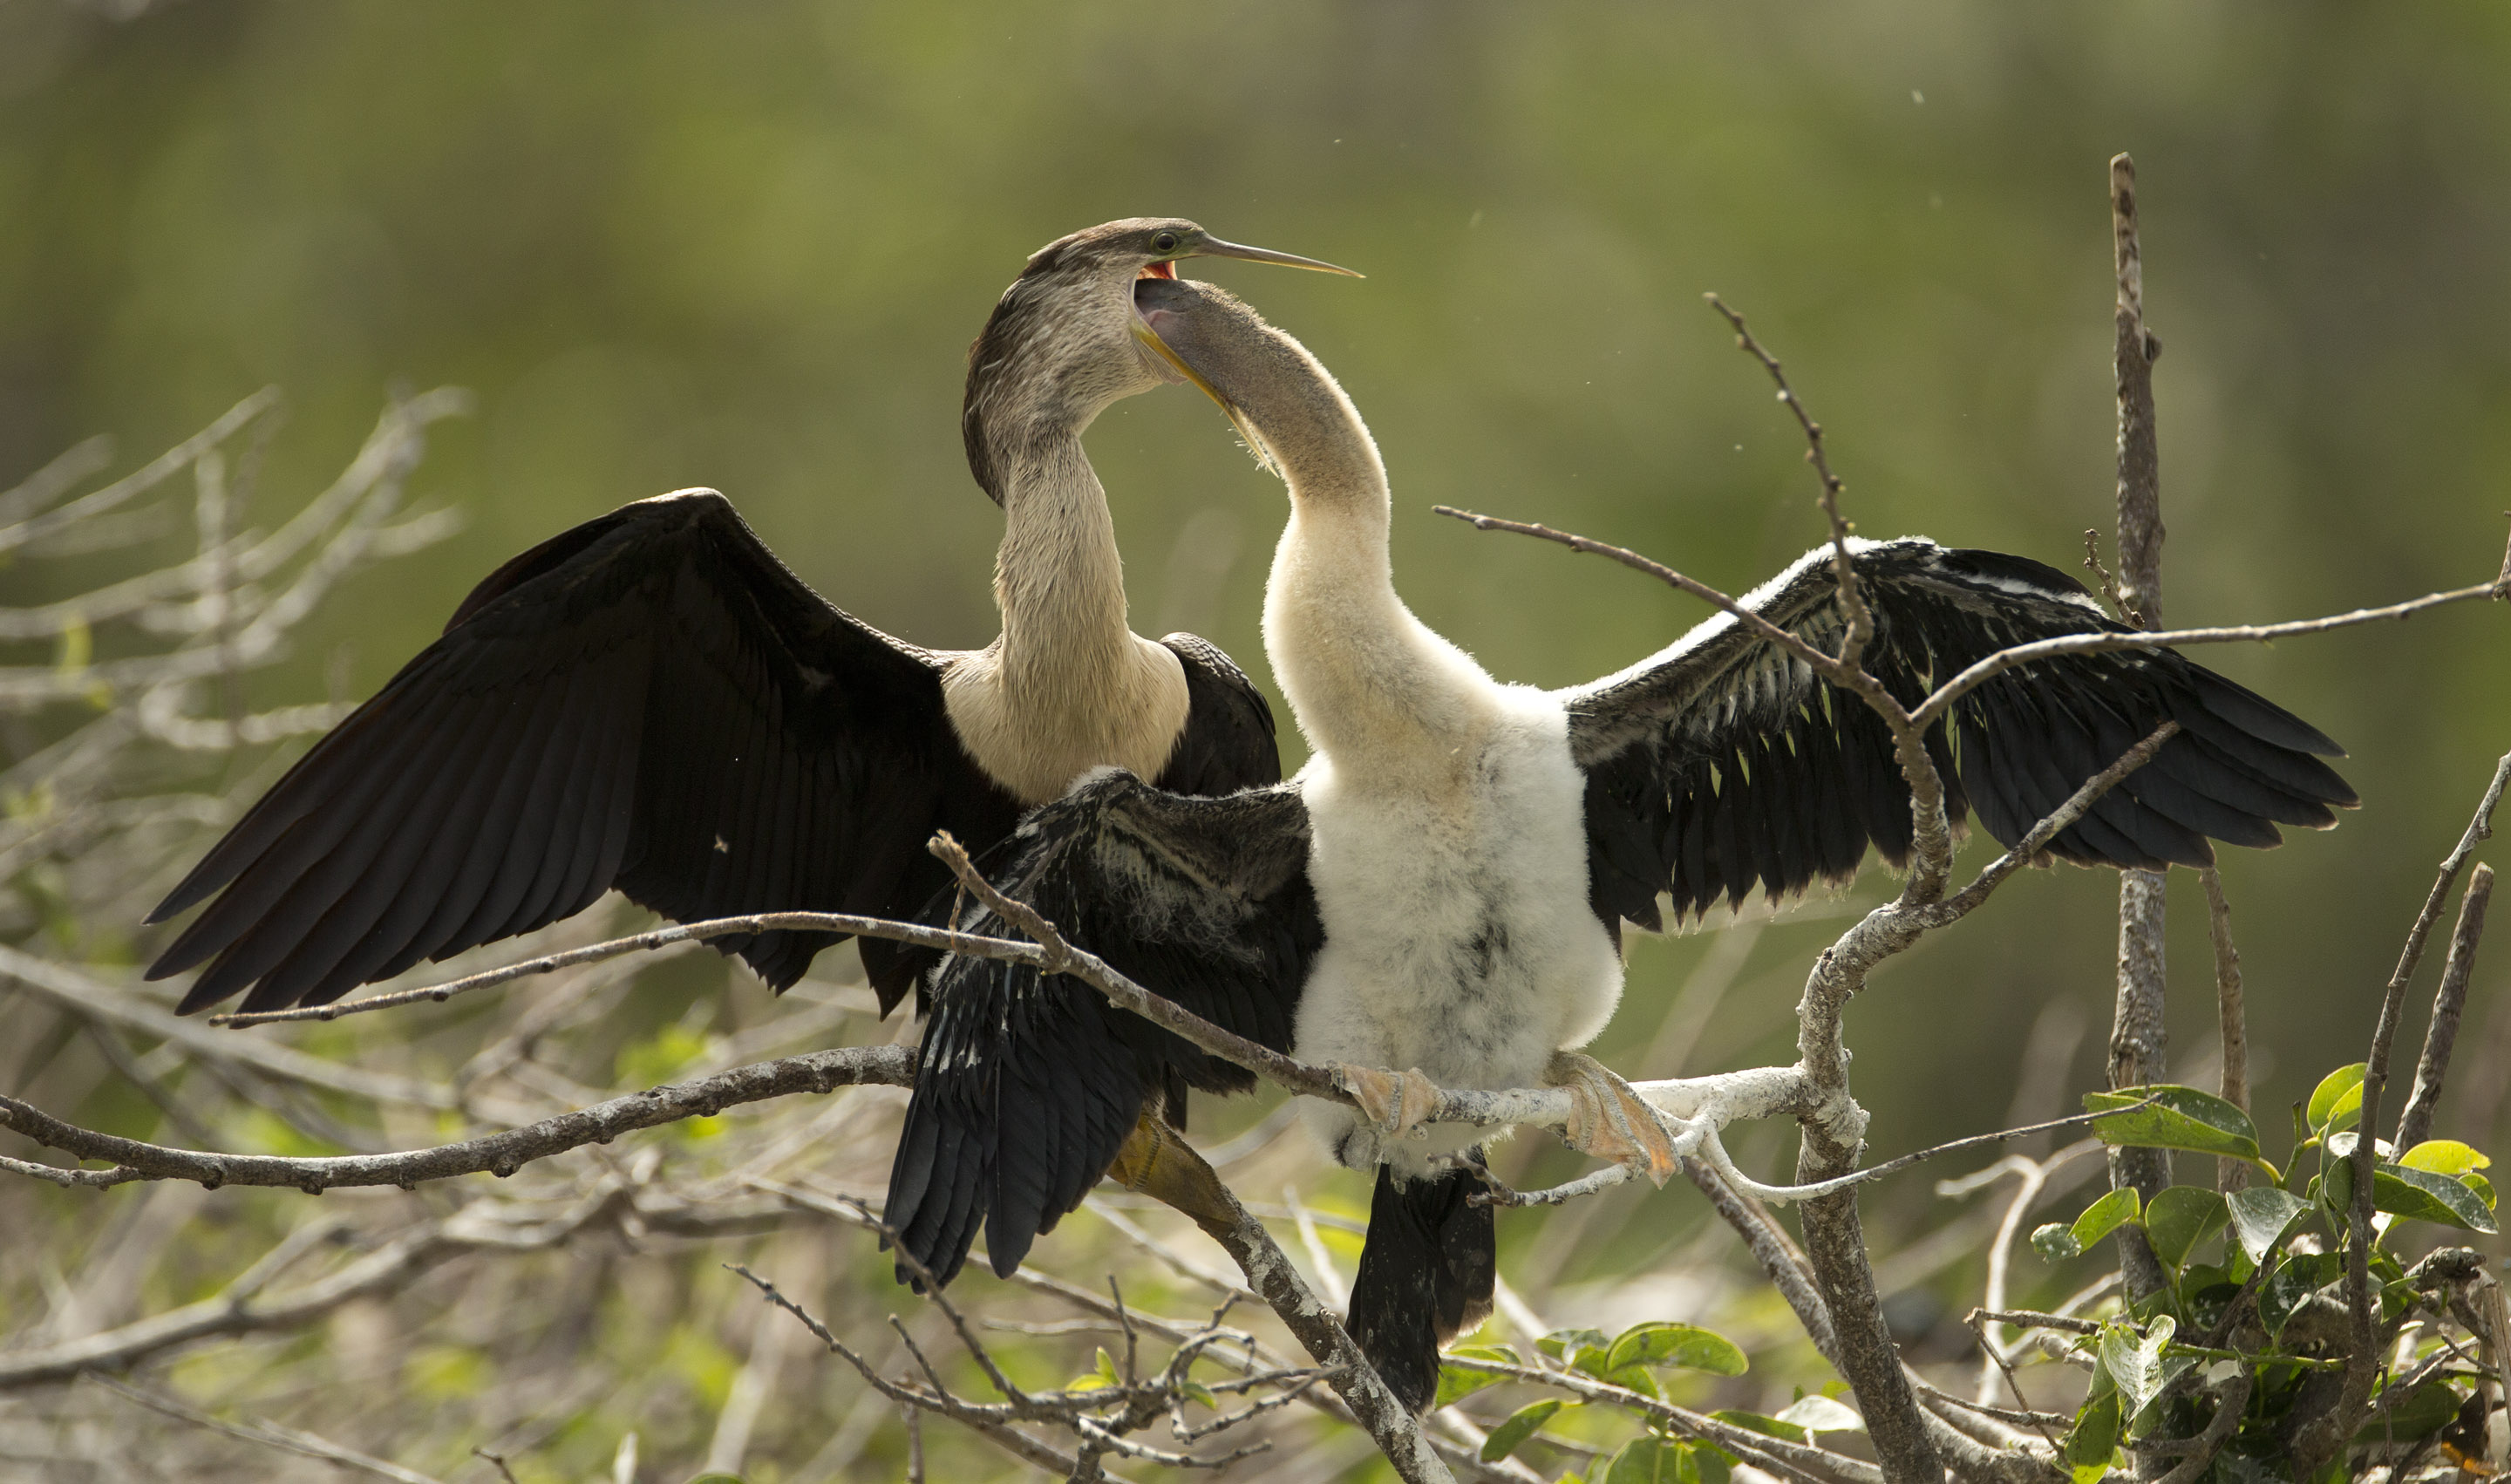 A young anhinga reaches inside a mature bird's mouth for food at the Wakodahatchee Wetlands near Delray Beach.